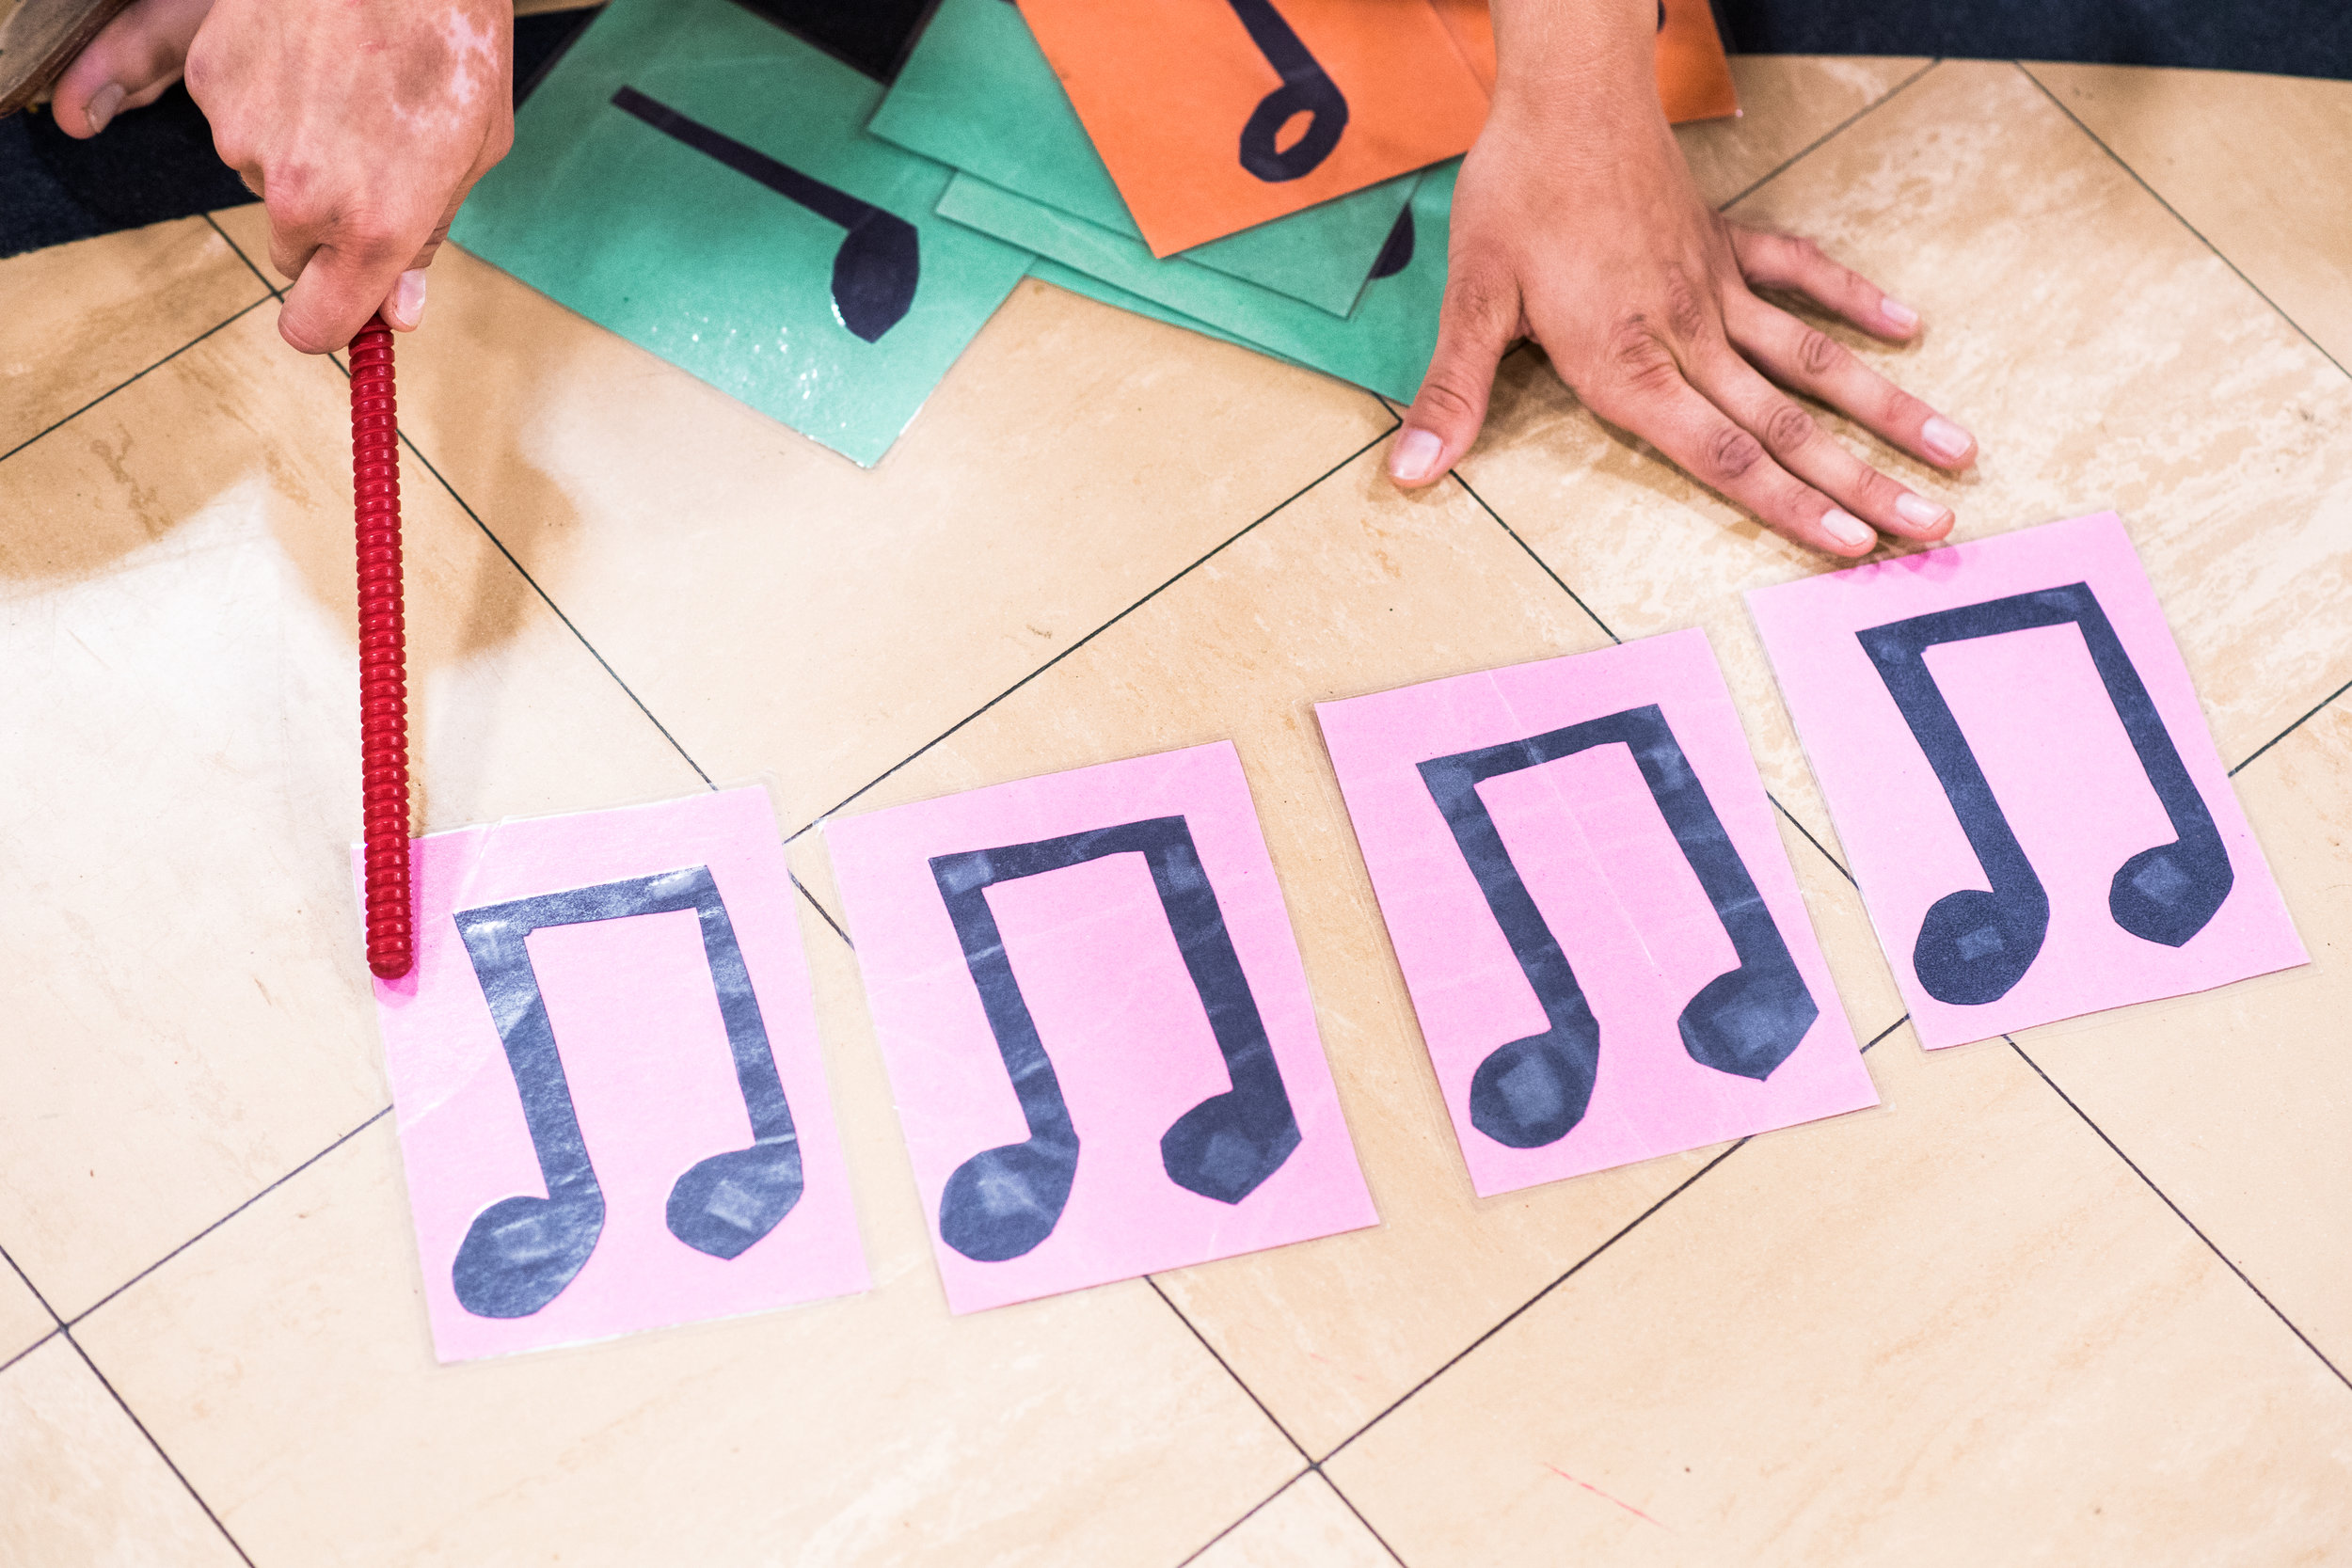 Music Lessons Available -  Learn the music alphabet and how it works, notes and chords, how to read the treble staff and guitar tablature, songs, and a basic understanding of the instrument.  Lessons are customized to the student according to their skill level and desire for learning.